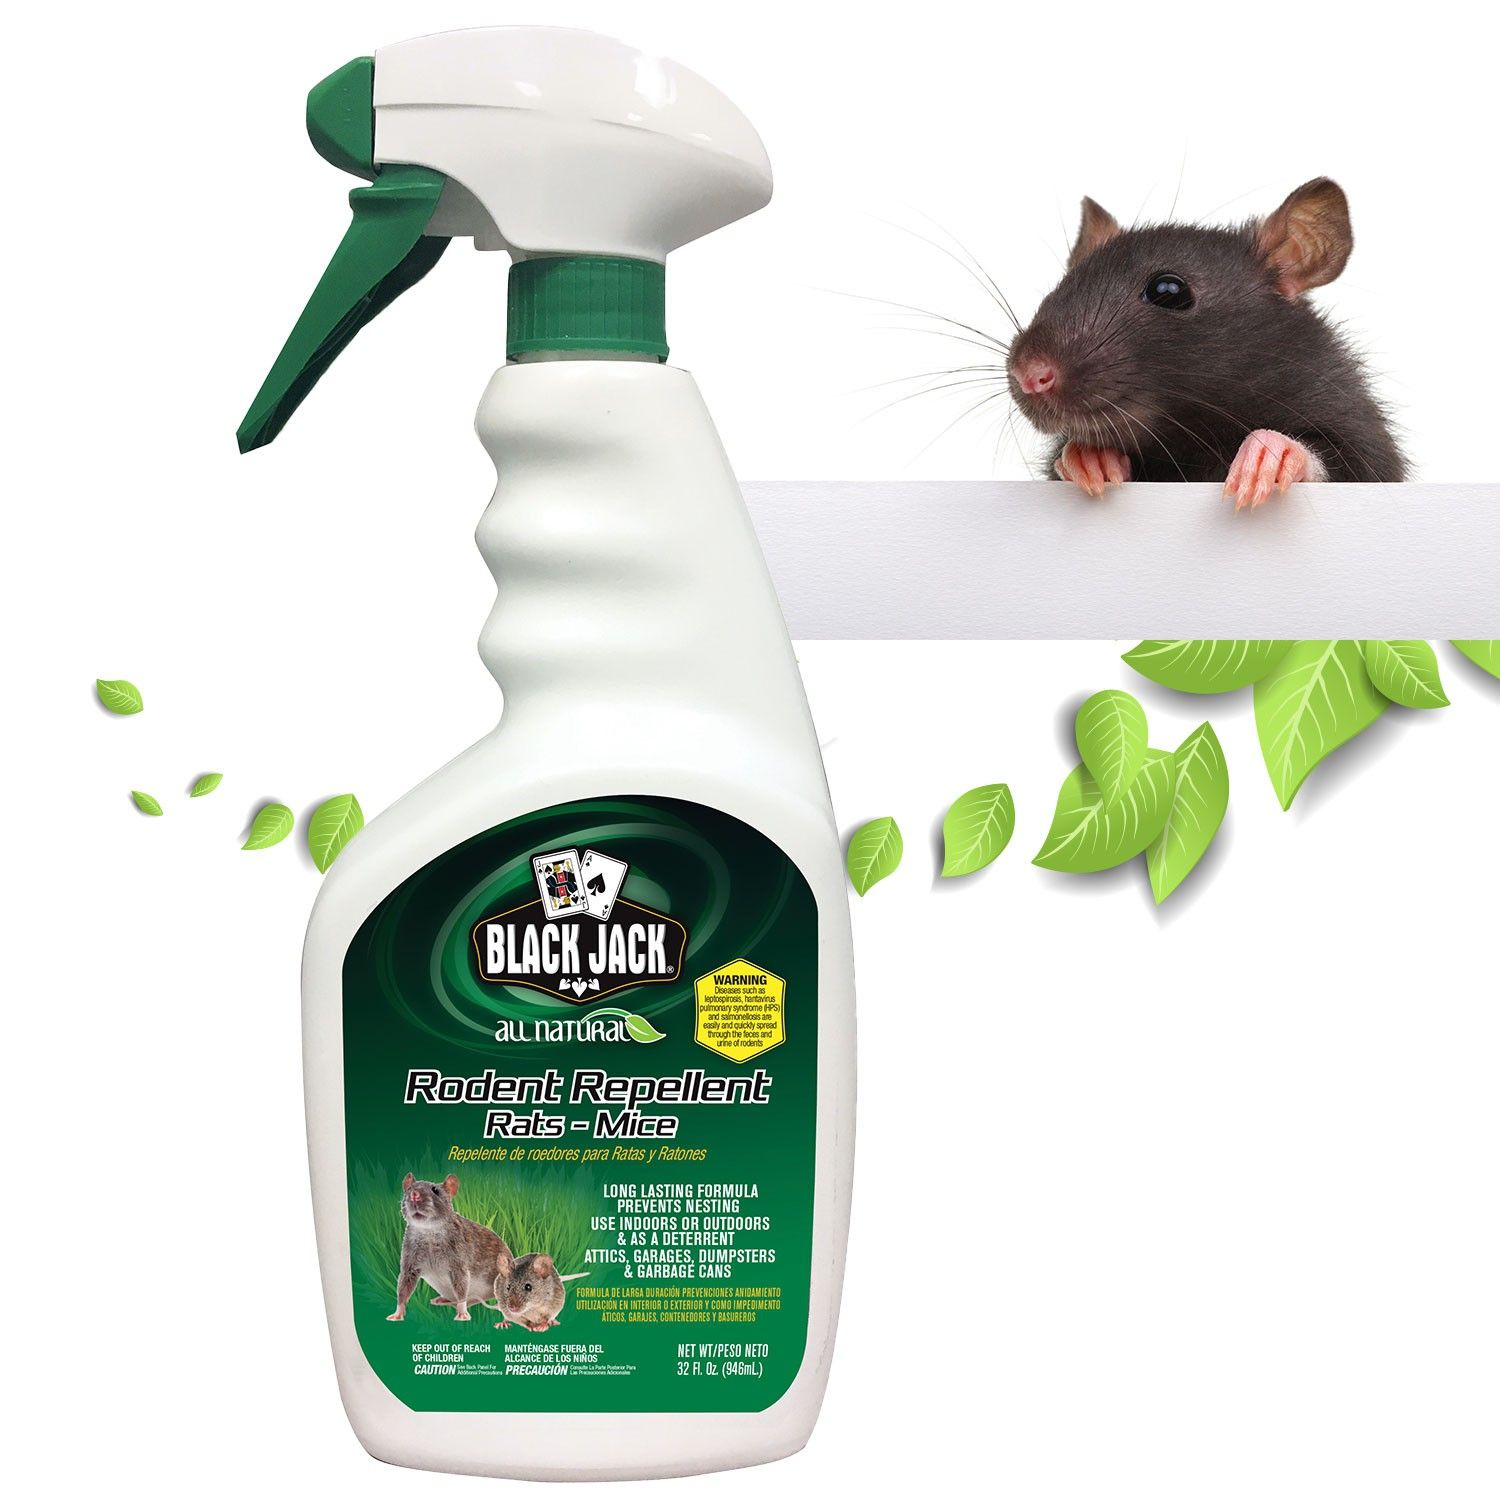 Black Jack All Natural Rodent Mice Repellent Peppermint Oil Spray Organic Humane 32oz Discontinued No Longer Available In 2020 Rodent Repellent Mice Repellent Animals For Kids